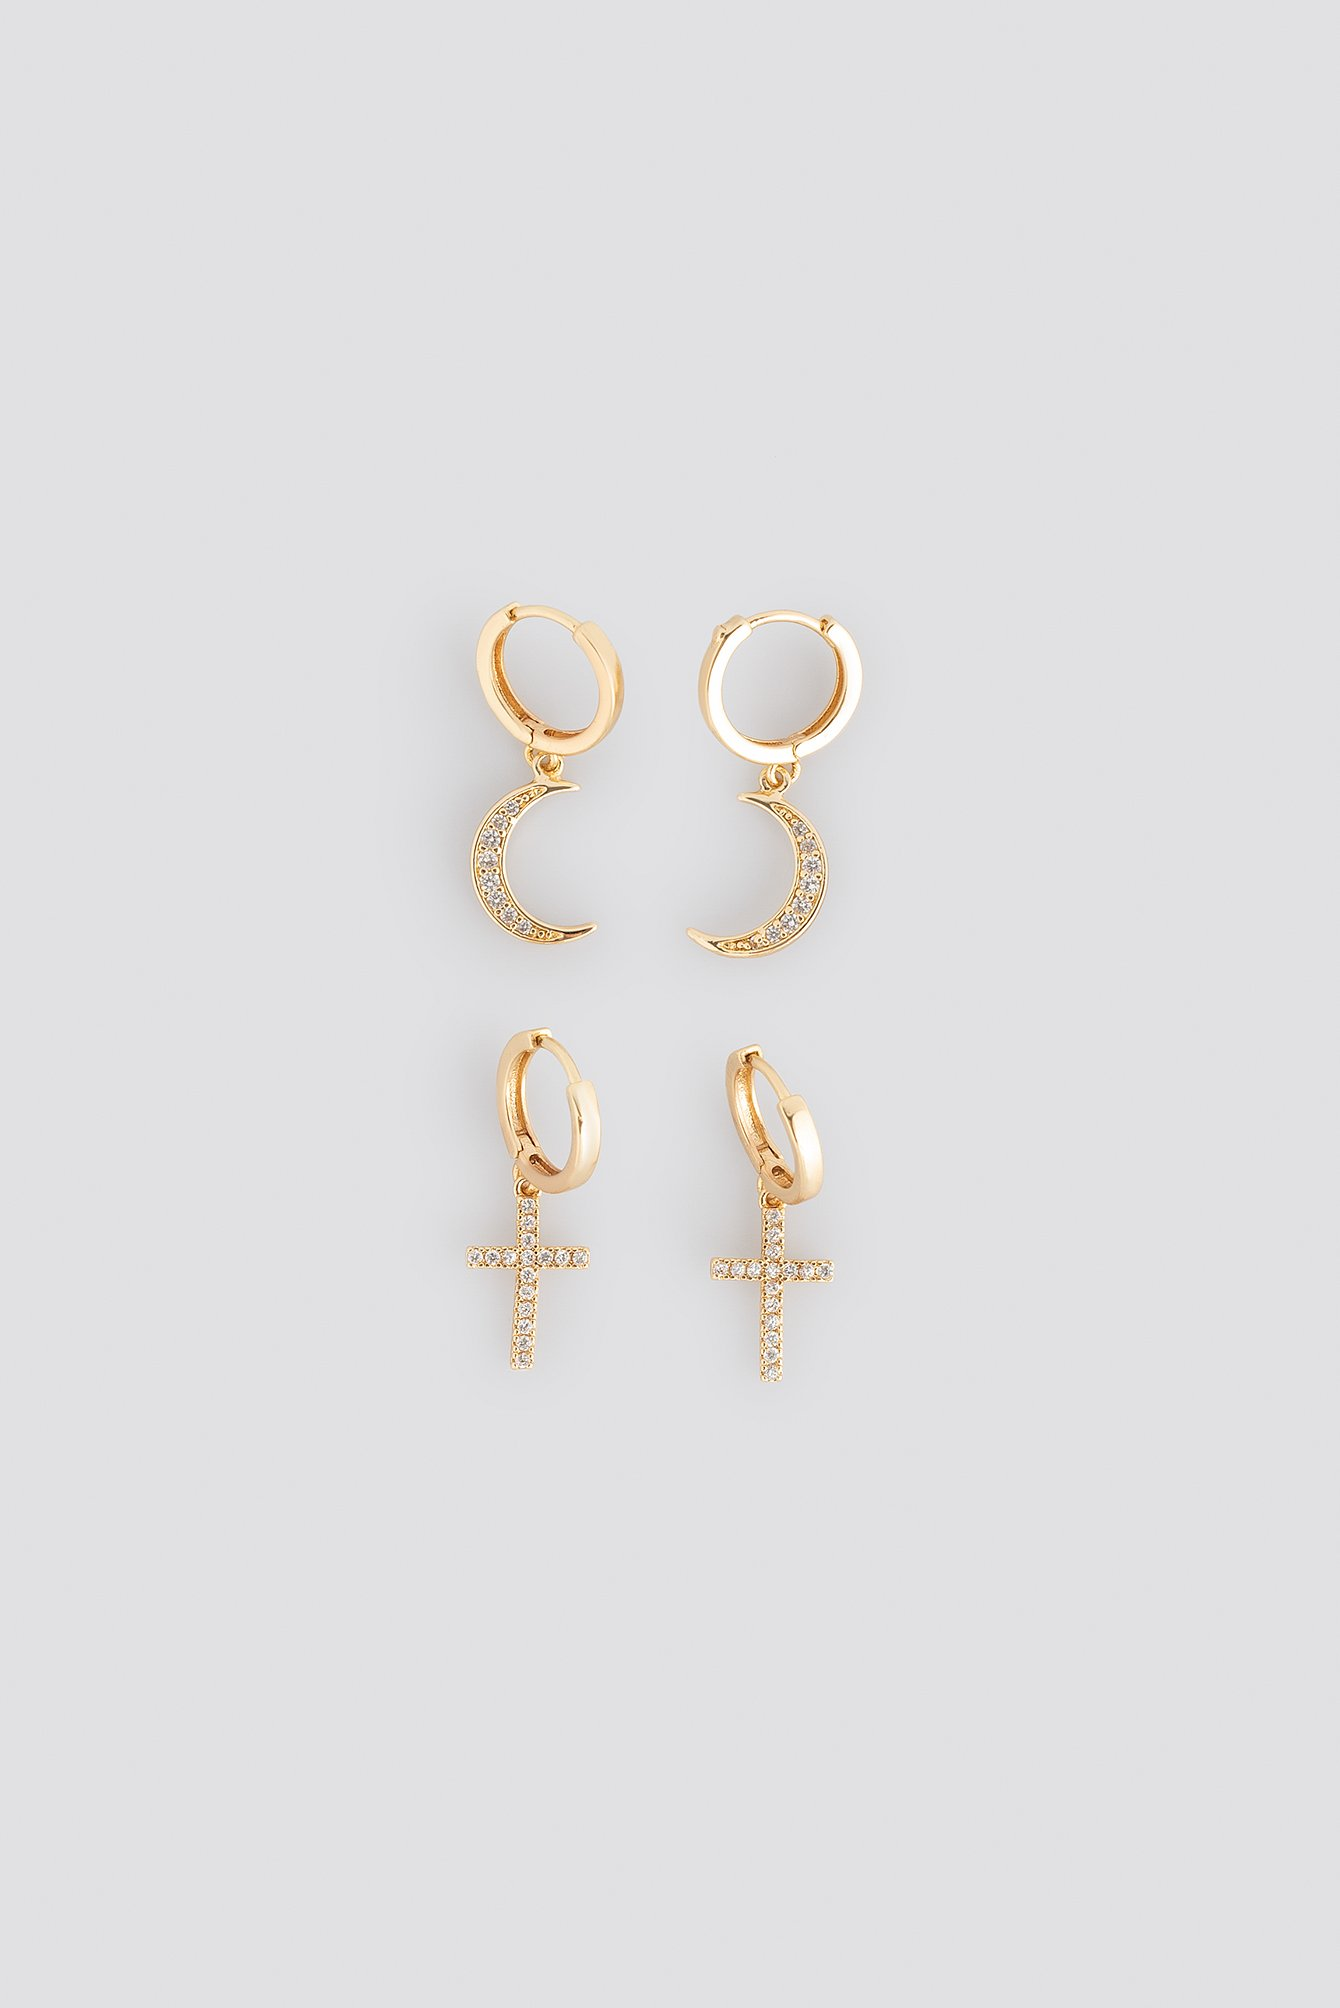 Gold Moon Cross Earrings